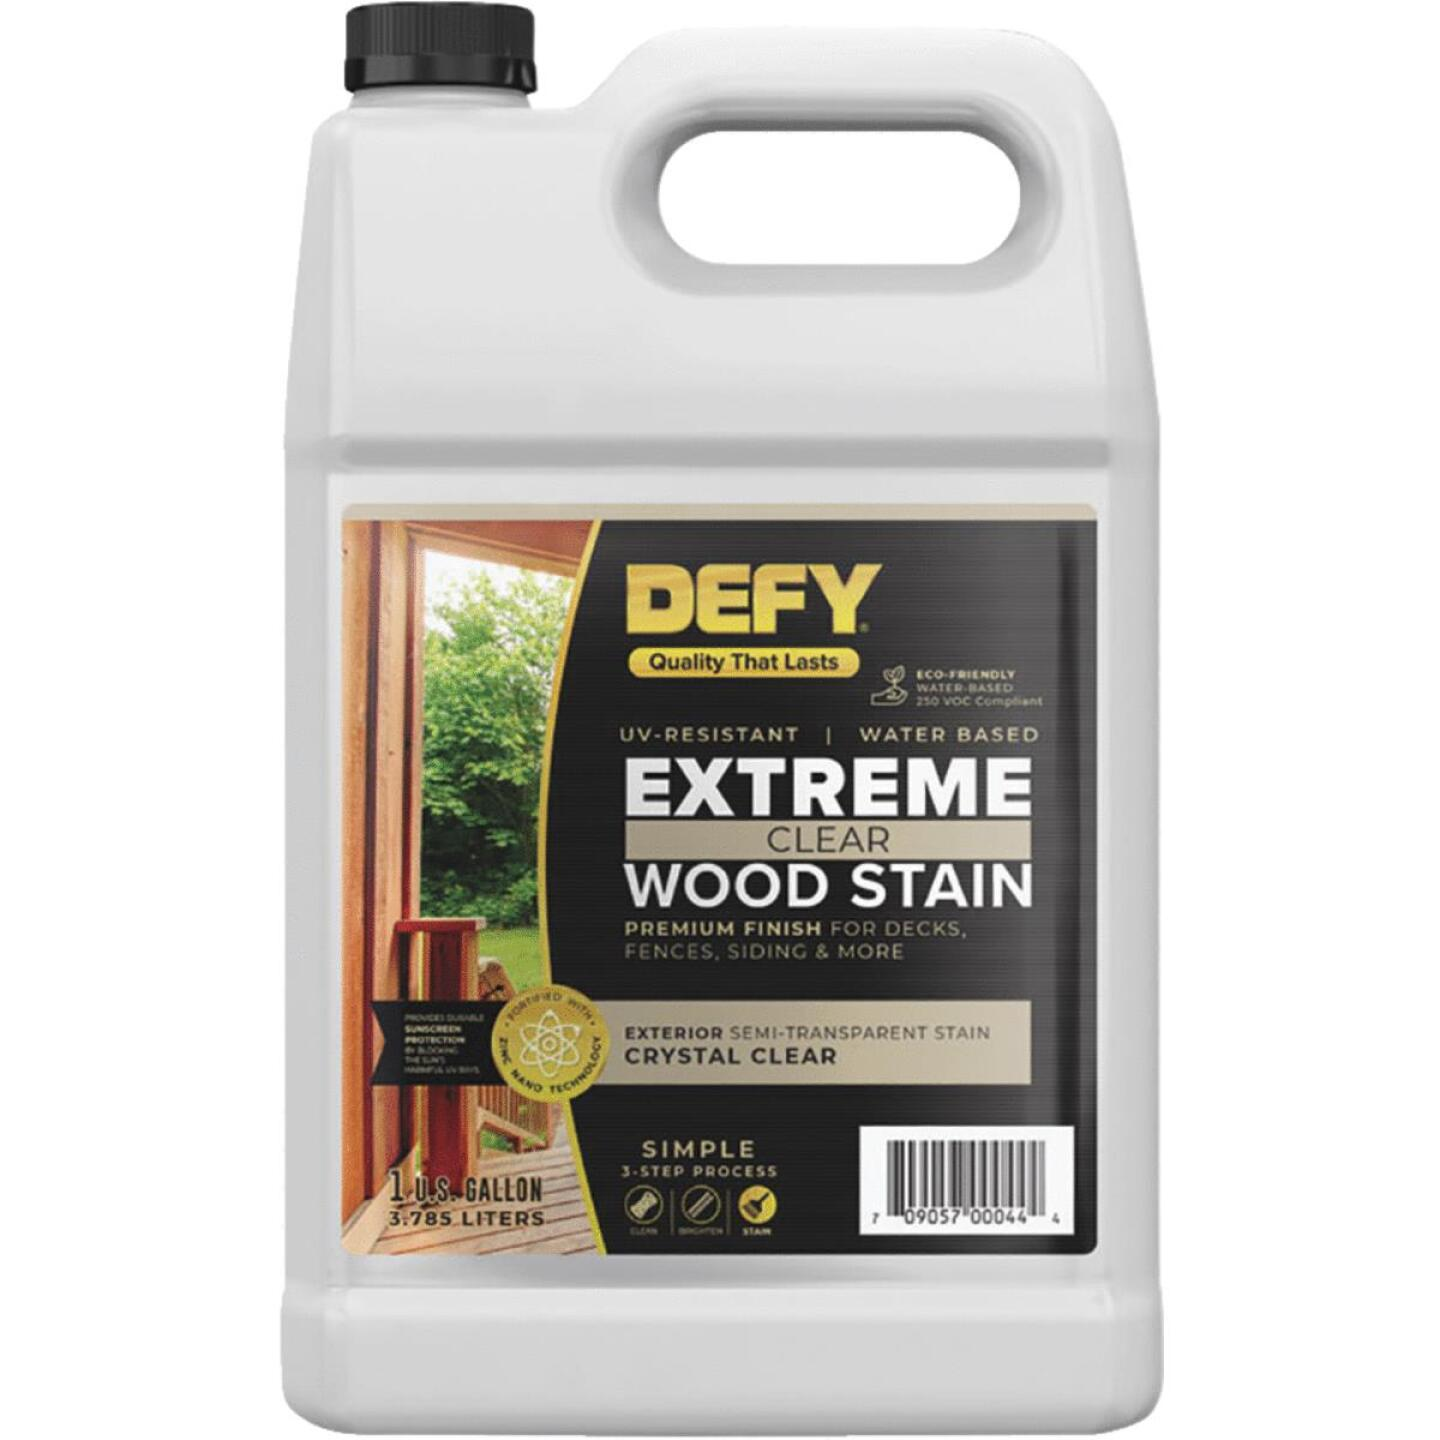 DEFY Extreme Transparent Exterior Wood Stain, Crystal Clear, 1 Gal. Bottle Image 1